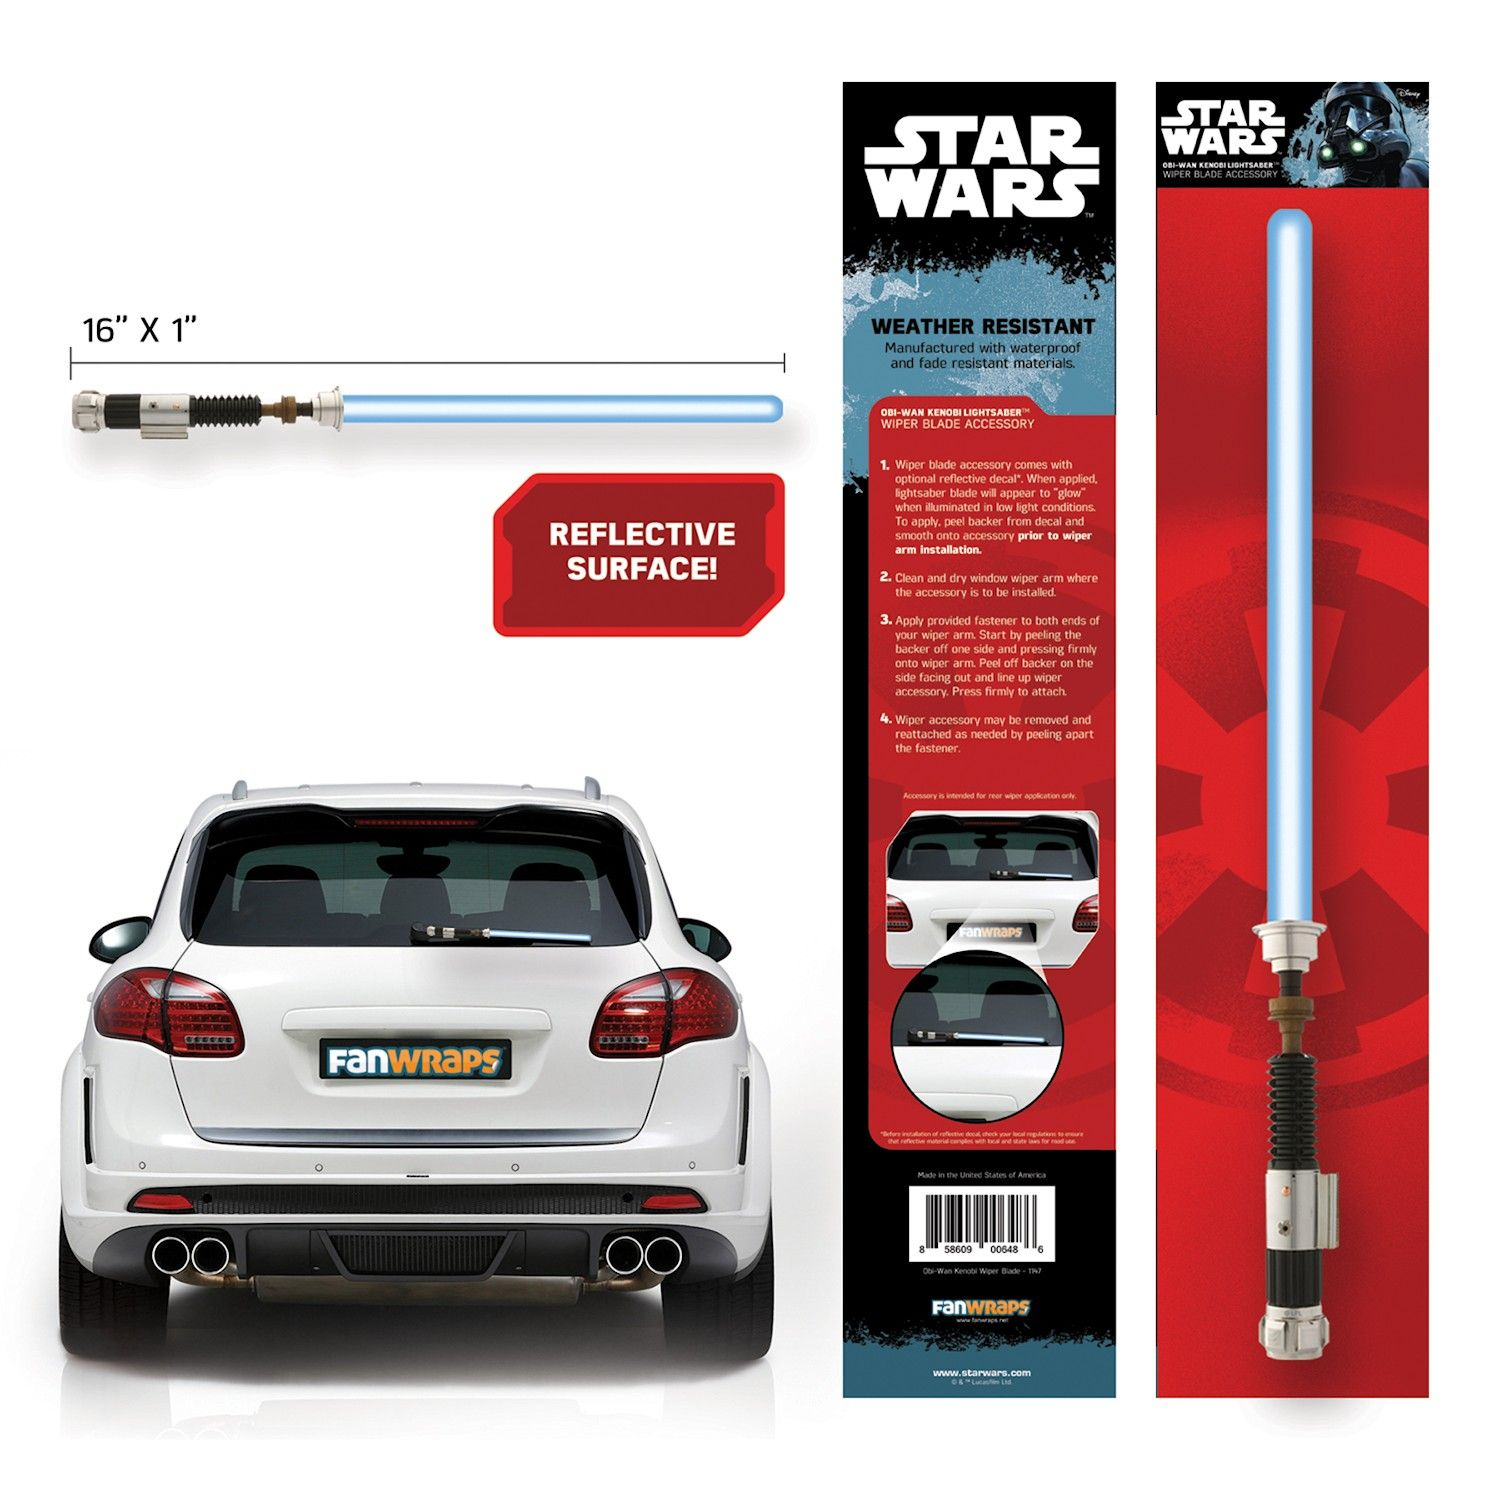 Star Wars Lightsaber Wiper Blade Car Accessories Star Wars Obi Wan Darth Vader Lightsaber Star Wars Accessories